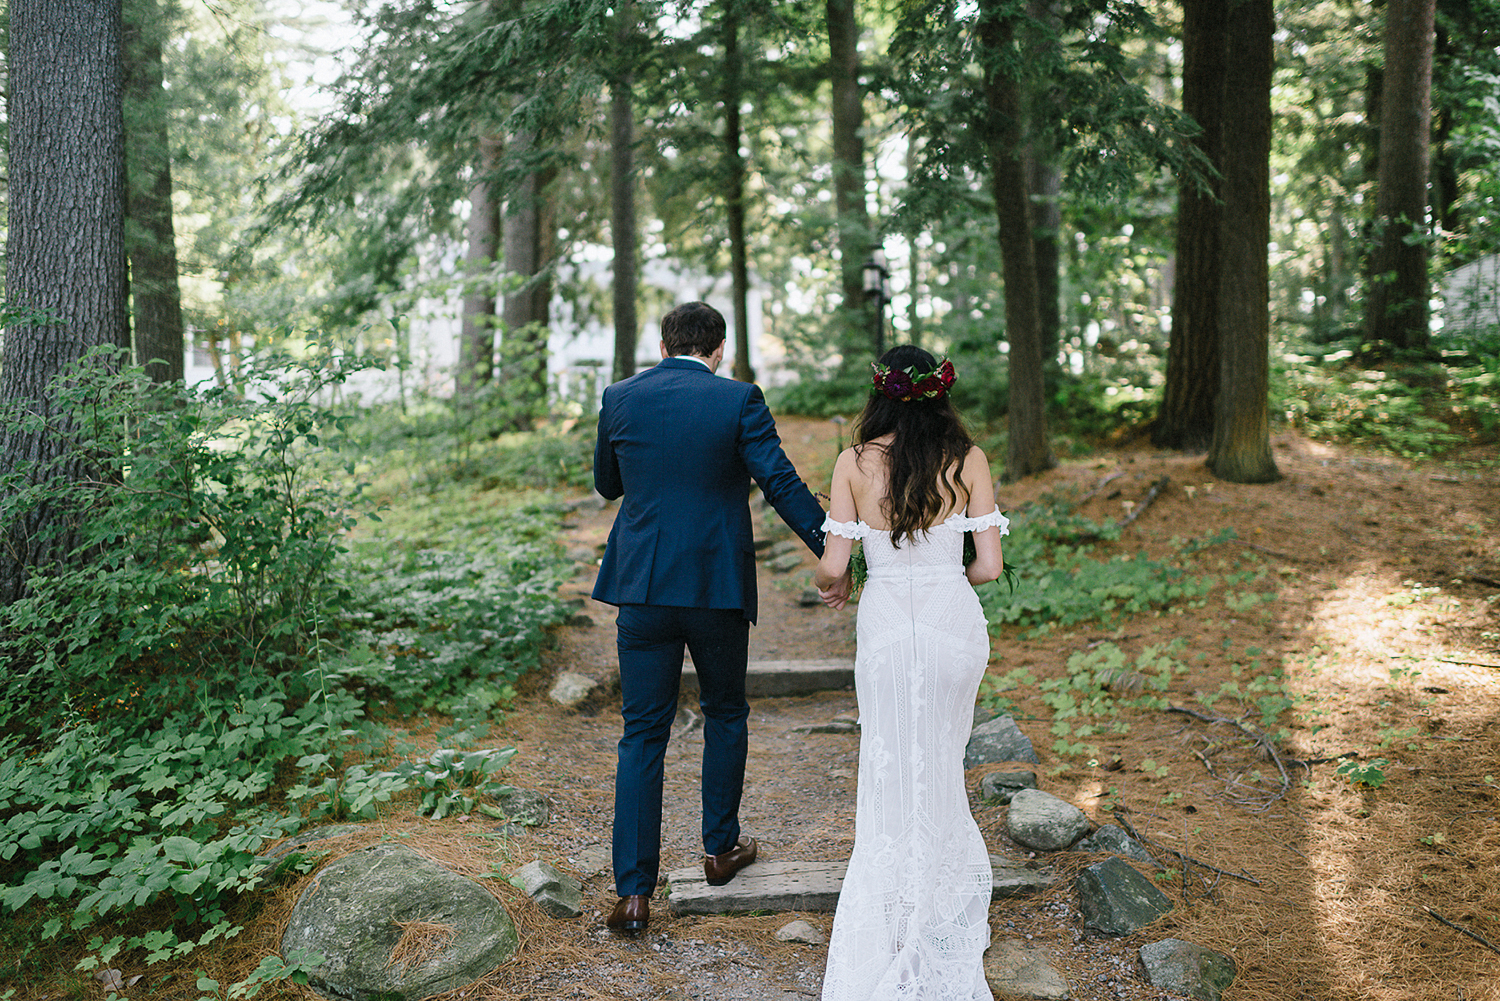 Muskoka-Cottage-Wedding-Photography-Photographer_Photojournalistic-Documentary-Wedding-Photography_Vintage-Bride-Sherwood-Inn-Lakeside-Ceremony-Space-Bride-and-Groom-in-Forest.jpg